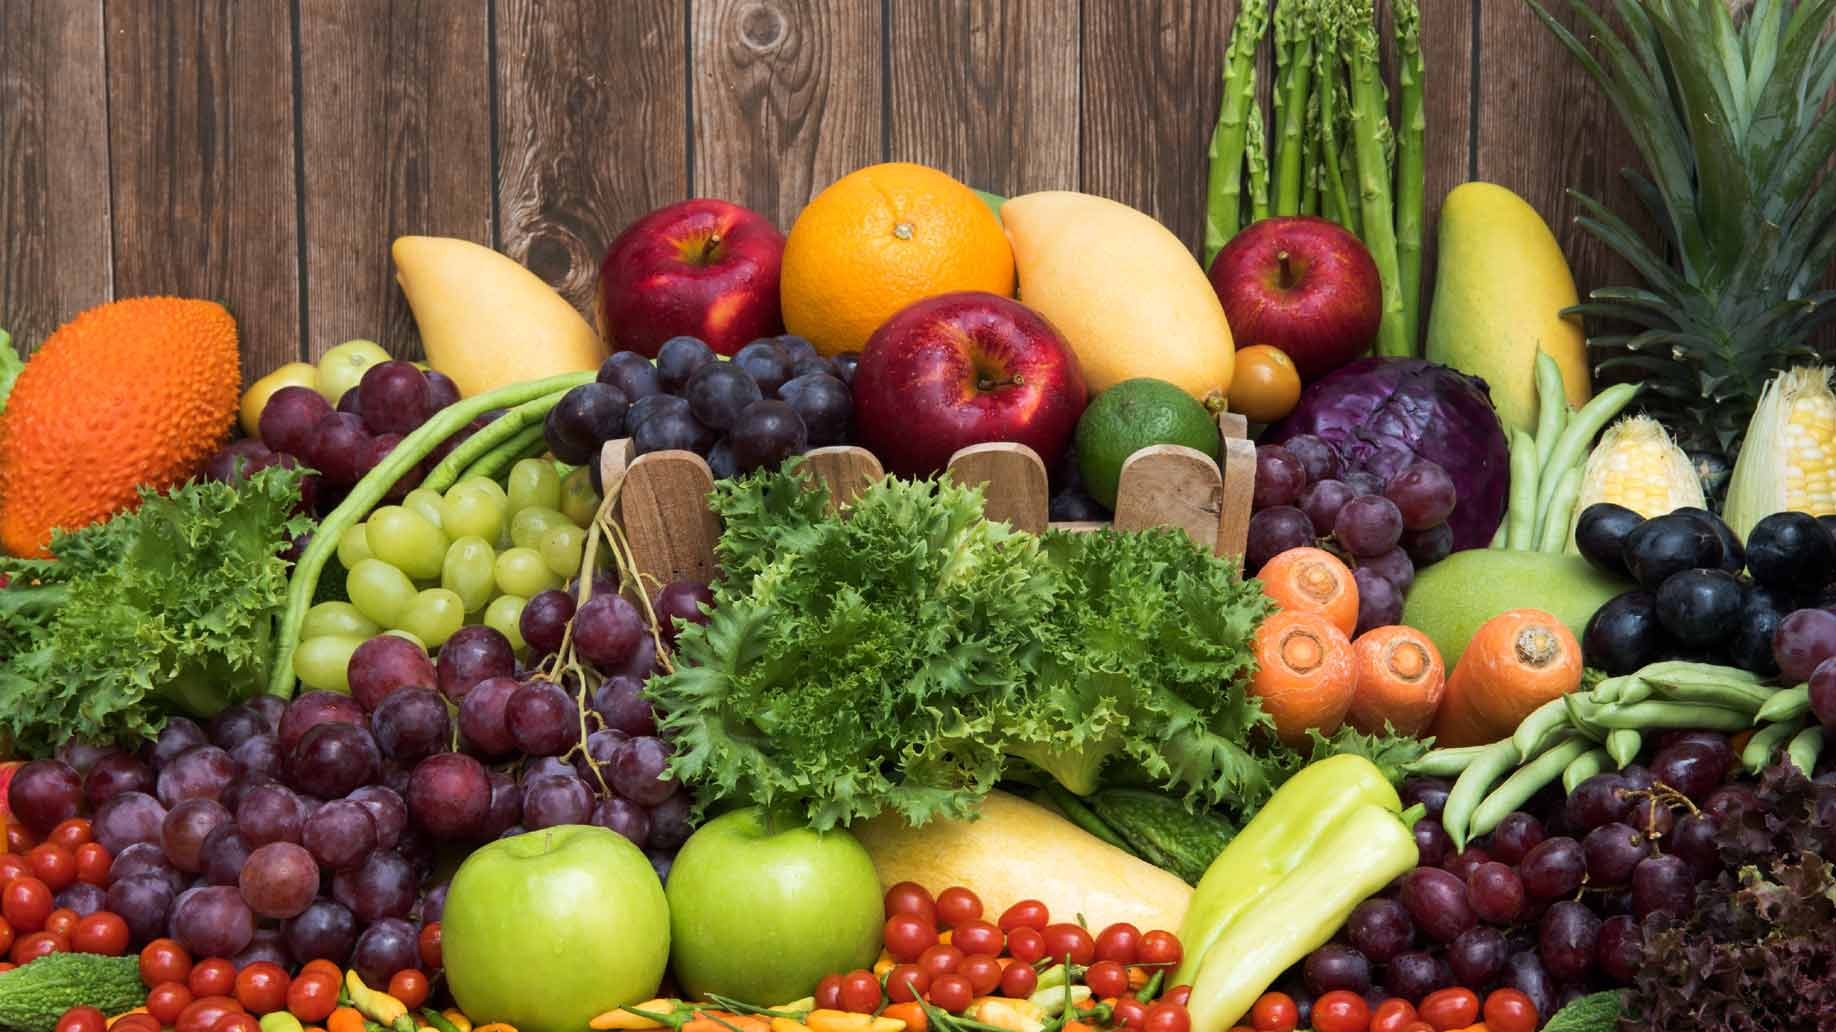 organic-fruits-vegetables.jpg